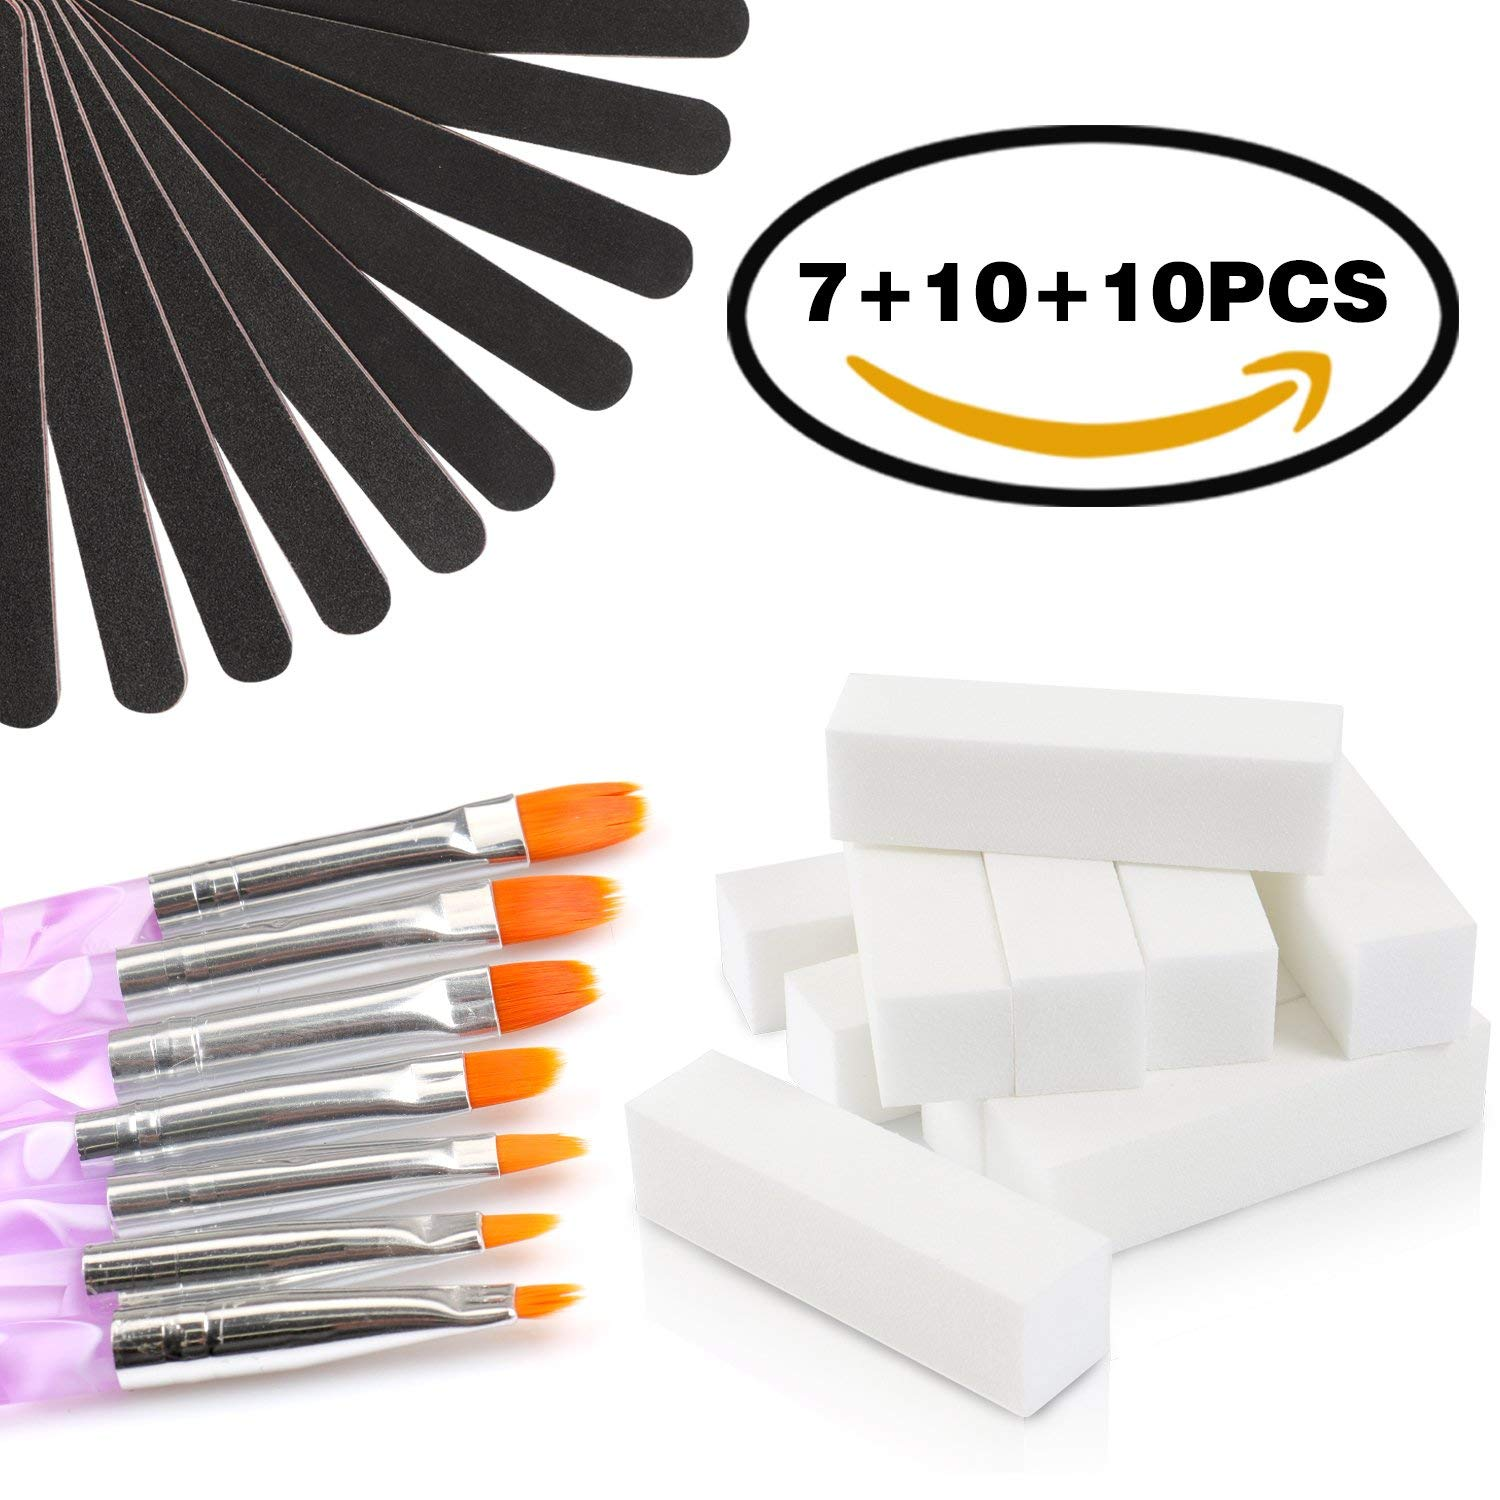 Nail Files And Buffers Set - 7PCS Arylic Gel Nail Builder Brushes &10PCS 100/180 Grit Nail Files Washable Emery Boards & 10PCS Acrylic Nail Buffer Block Nail Art Manicure Pedicure Tool